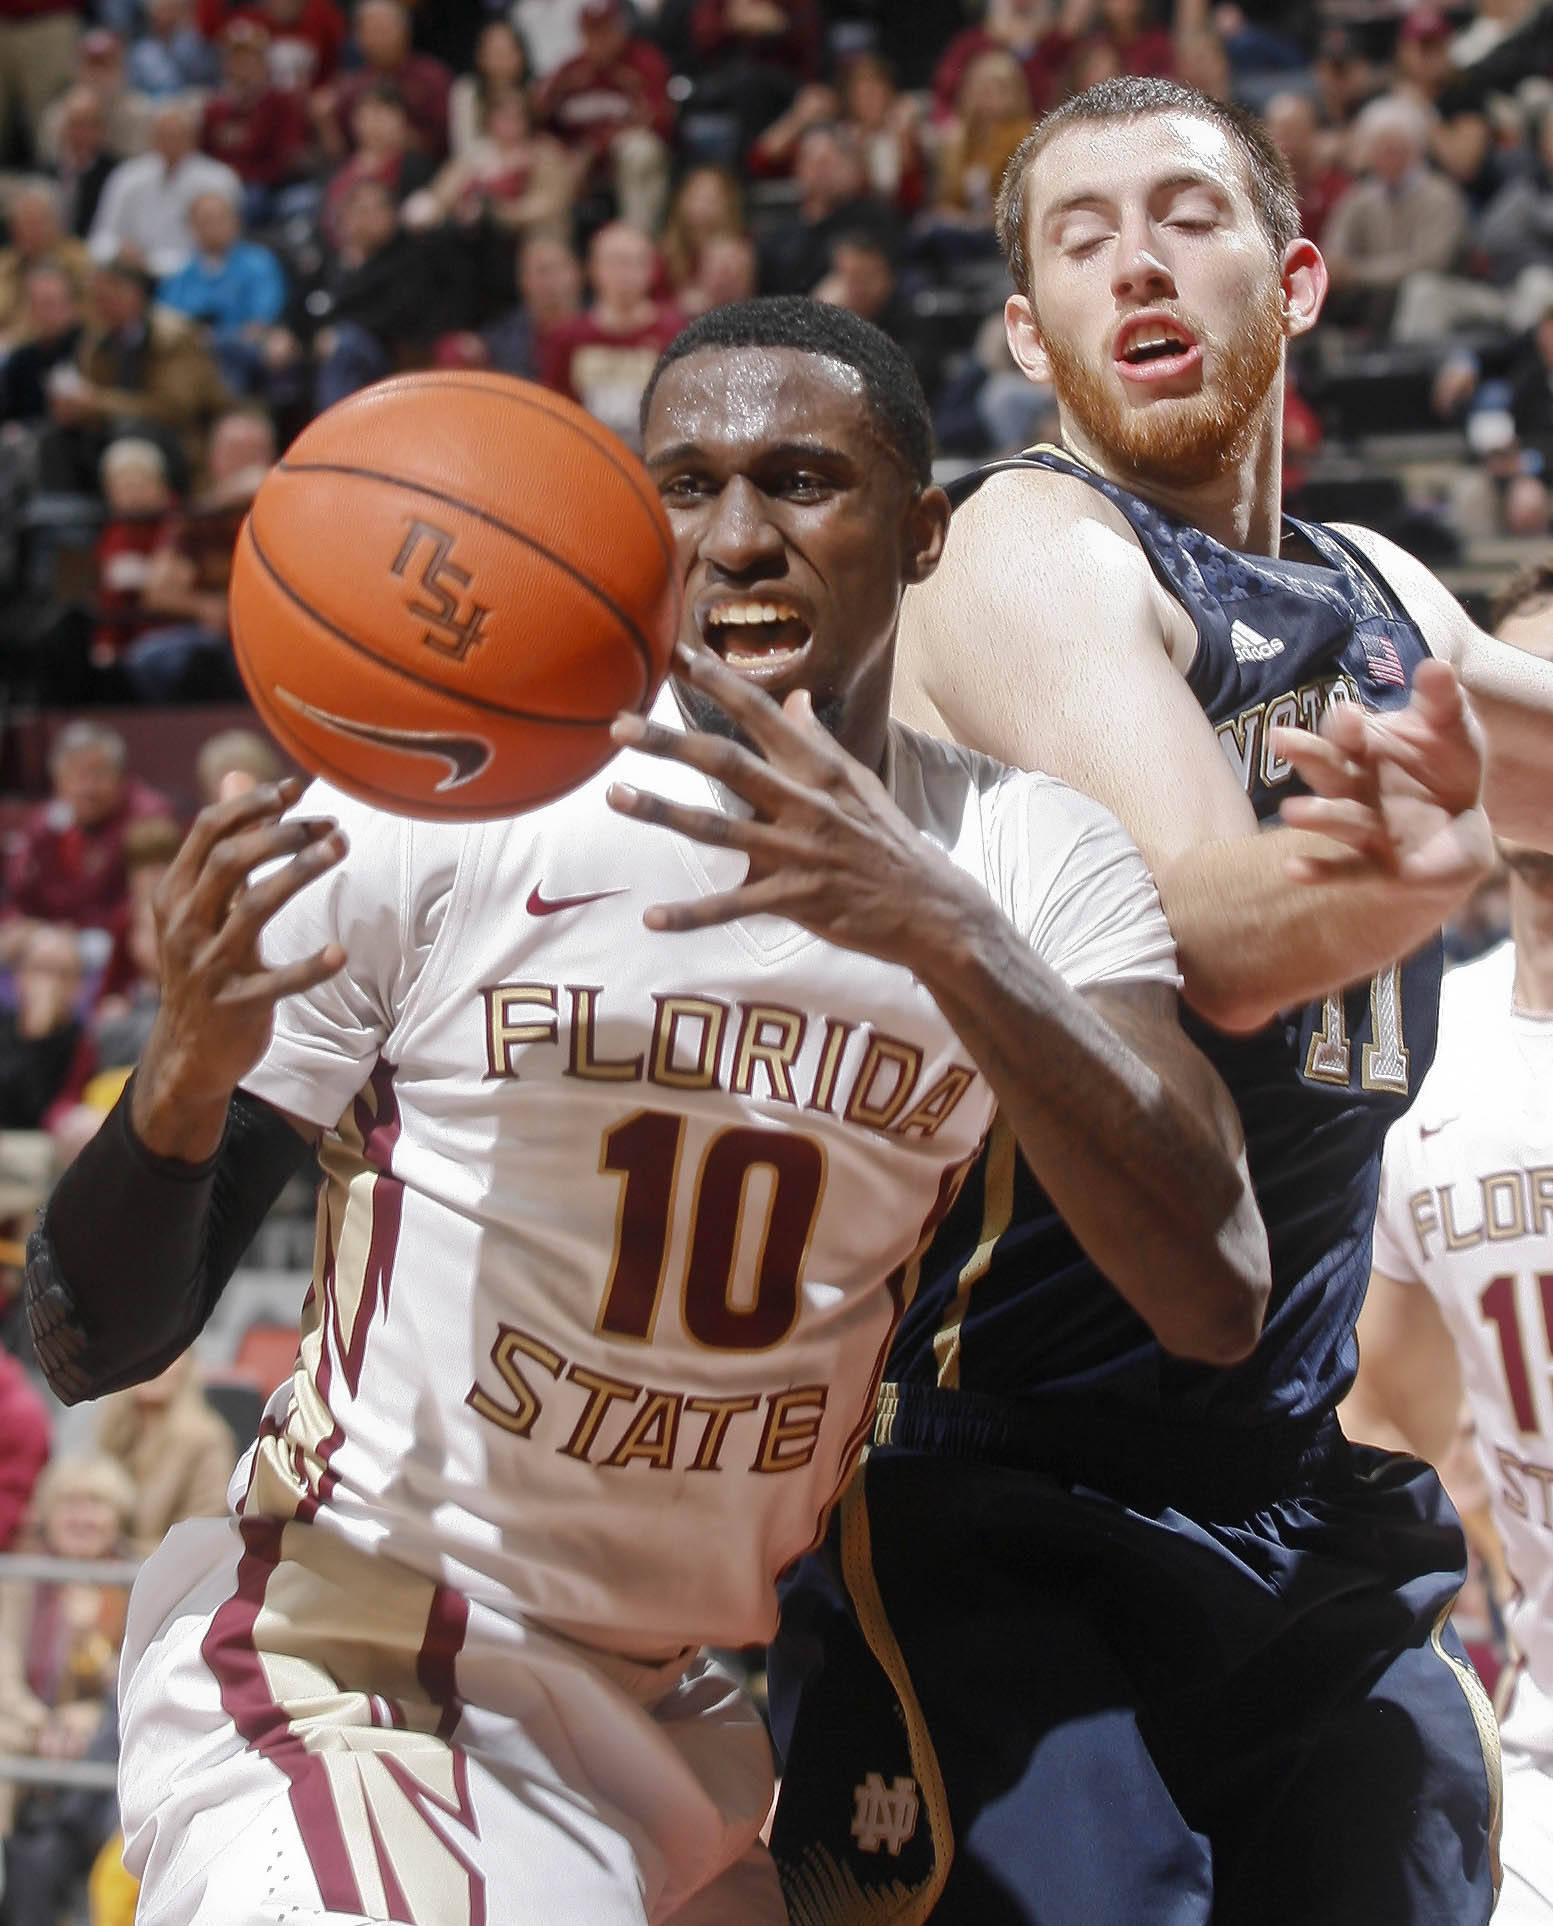 Jan 21, 2014; Tallahassee, FL, USA; Florida State Seminoles forward Okaro White (10) goes for a rebound as Notre Dame Fighting Irish center Garrick Sherman (11) is out of position in the second half at the Donald L. Tucker Center. The Florida State Seminoles beat the Notre Dame Fighting Irish 76-74. Mandatory Credit: Phil Sears-USA TODAY Sports